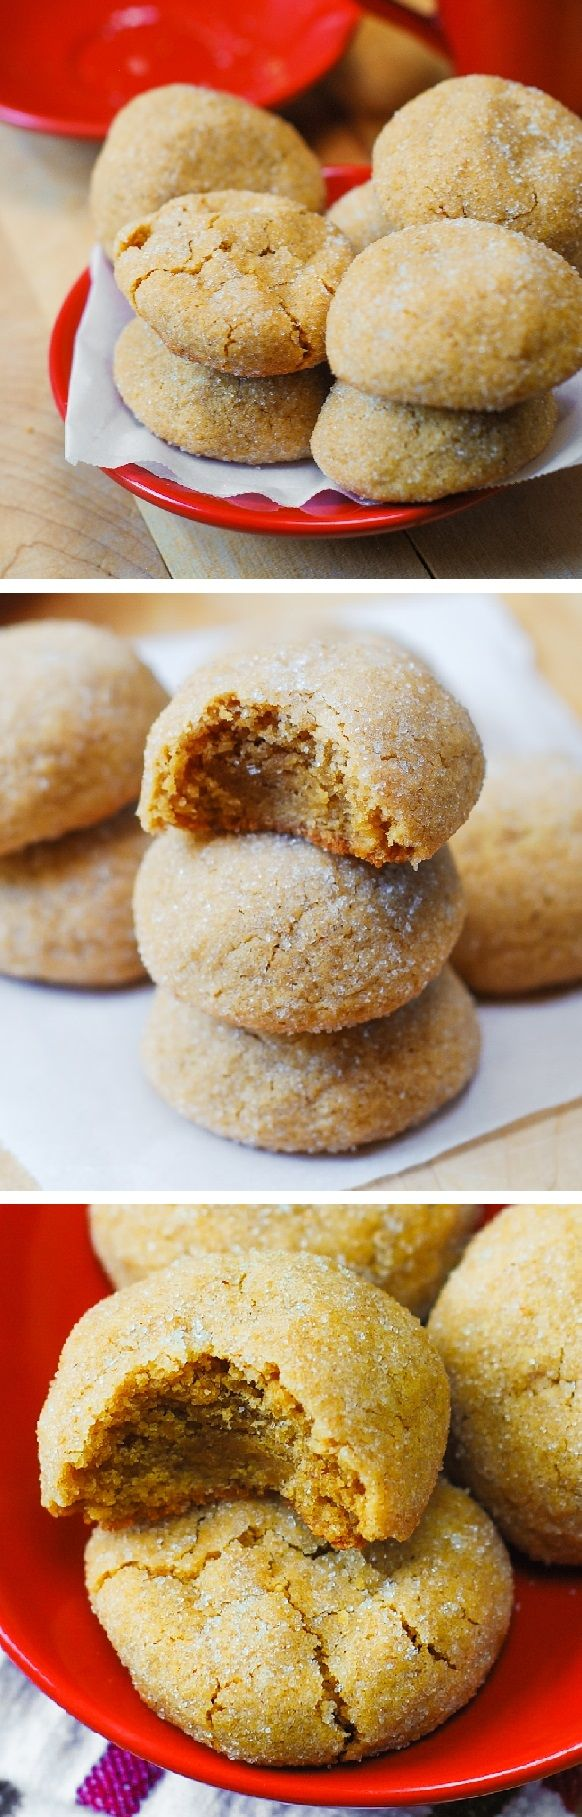 The best peanut butter cookies! Delicious brownie-like texture: chewy ...